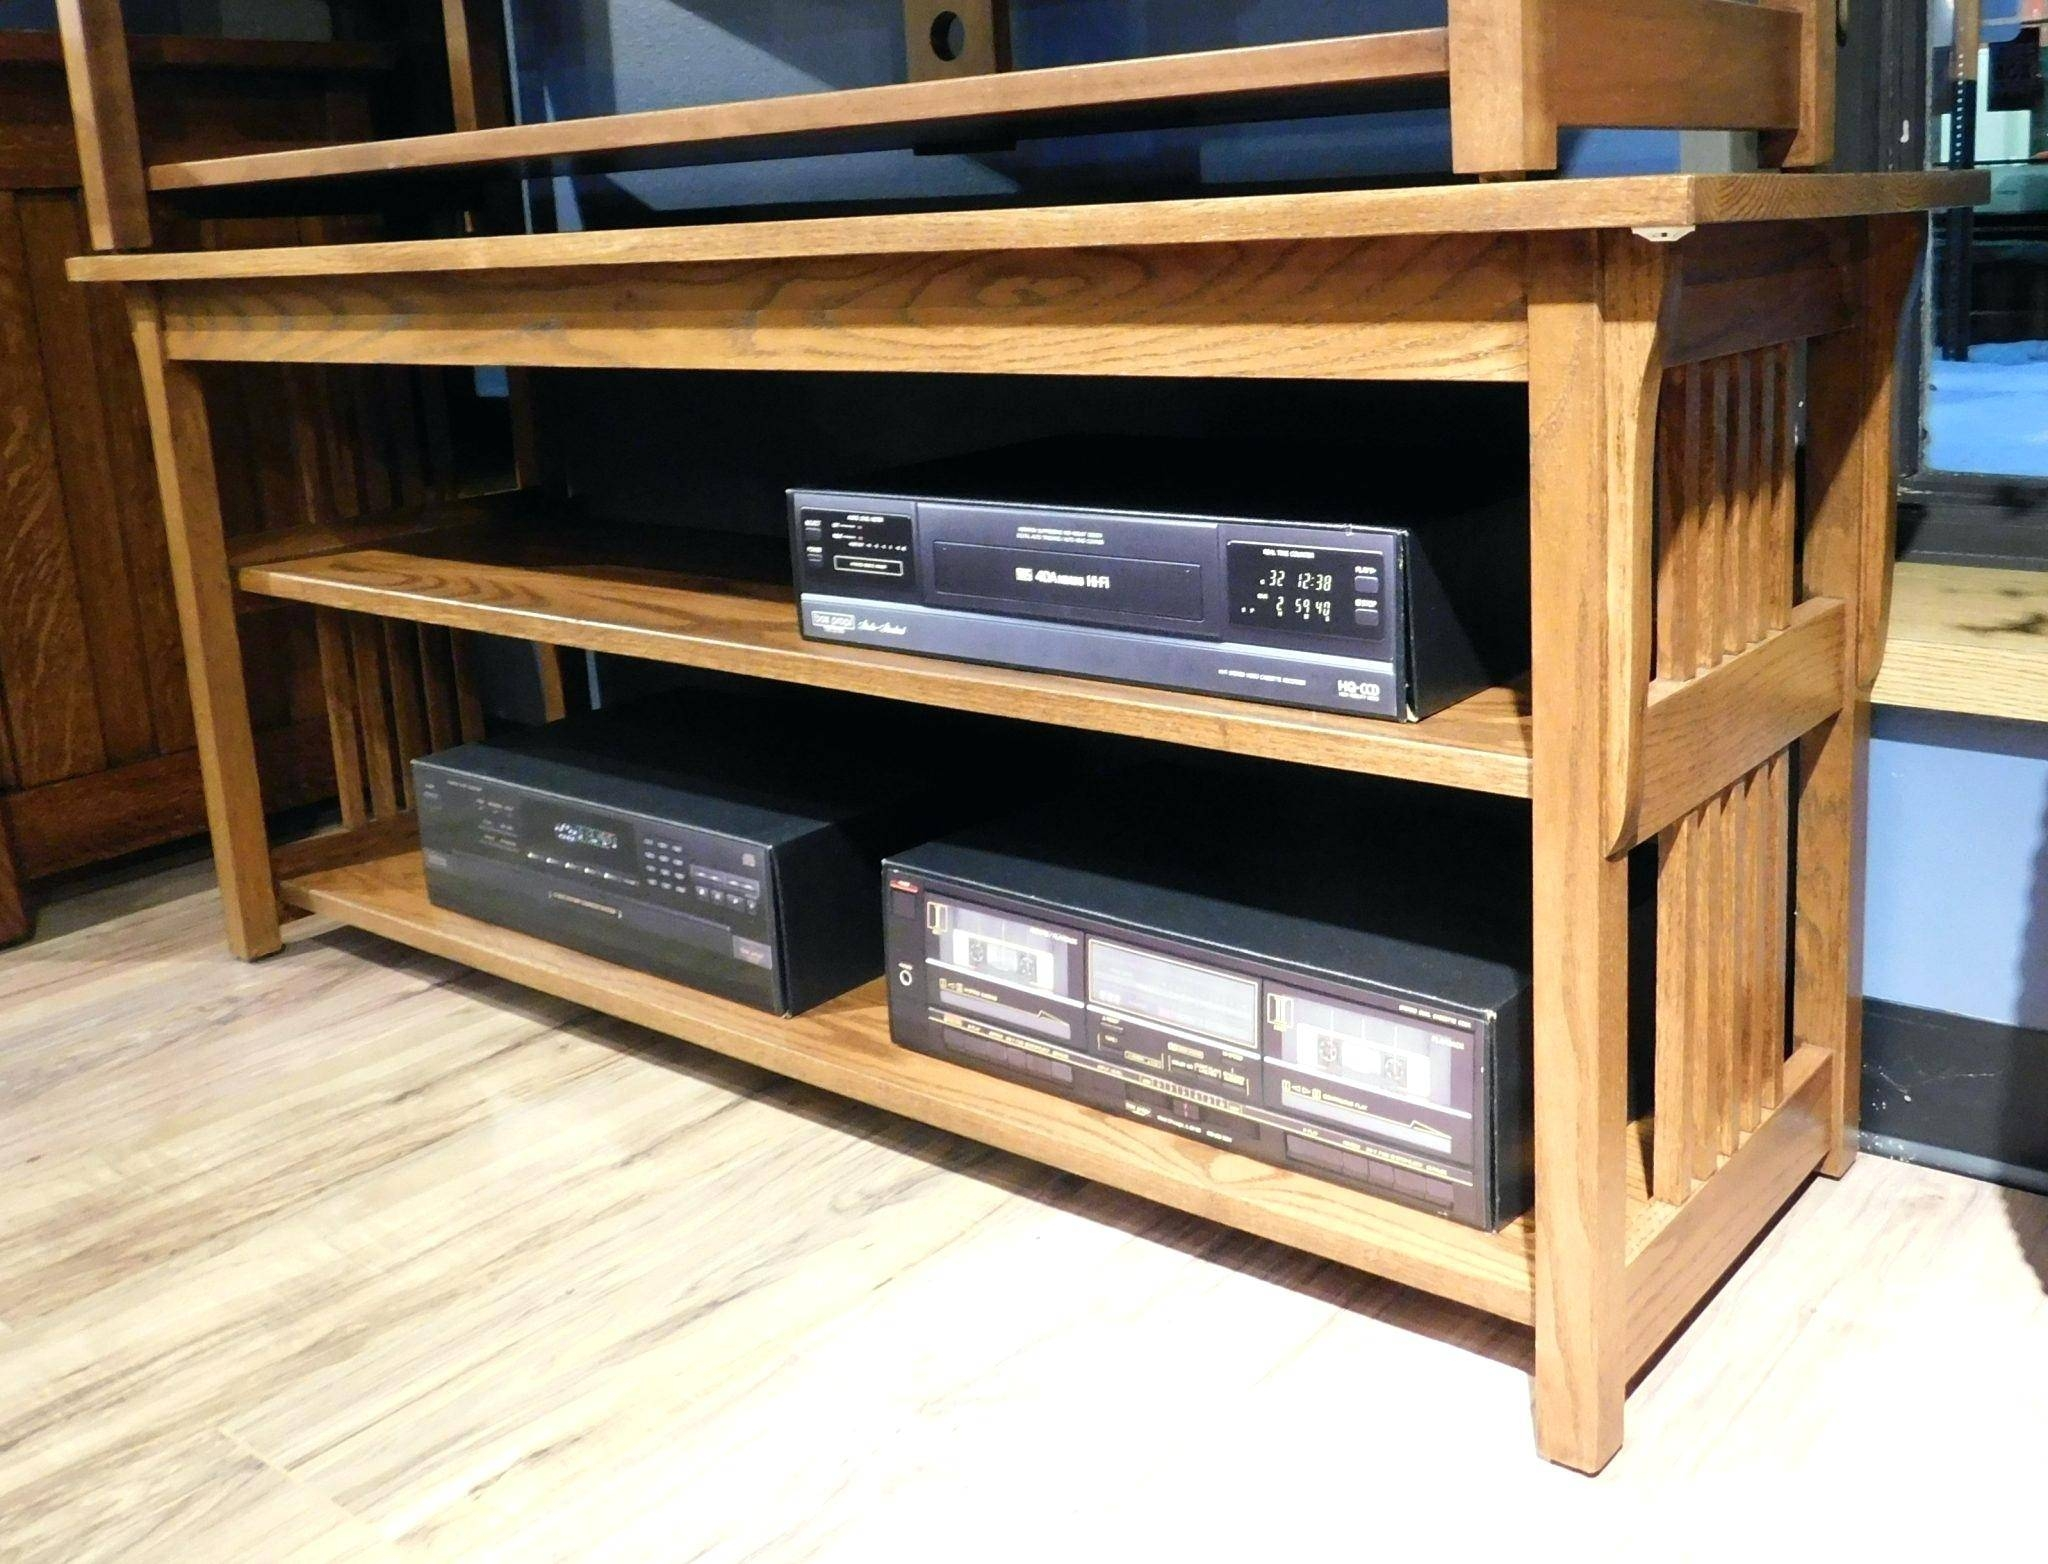 Tv Stand : Gorgeous Synergy System 248 Quad Width 87 Av Cabinet Tv pertaining to Maple Tv Stands (Image 8 of 15)